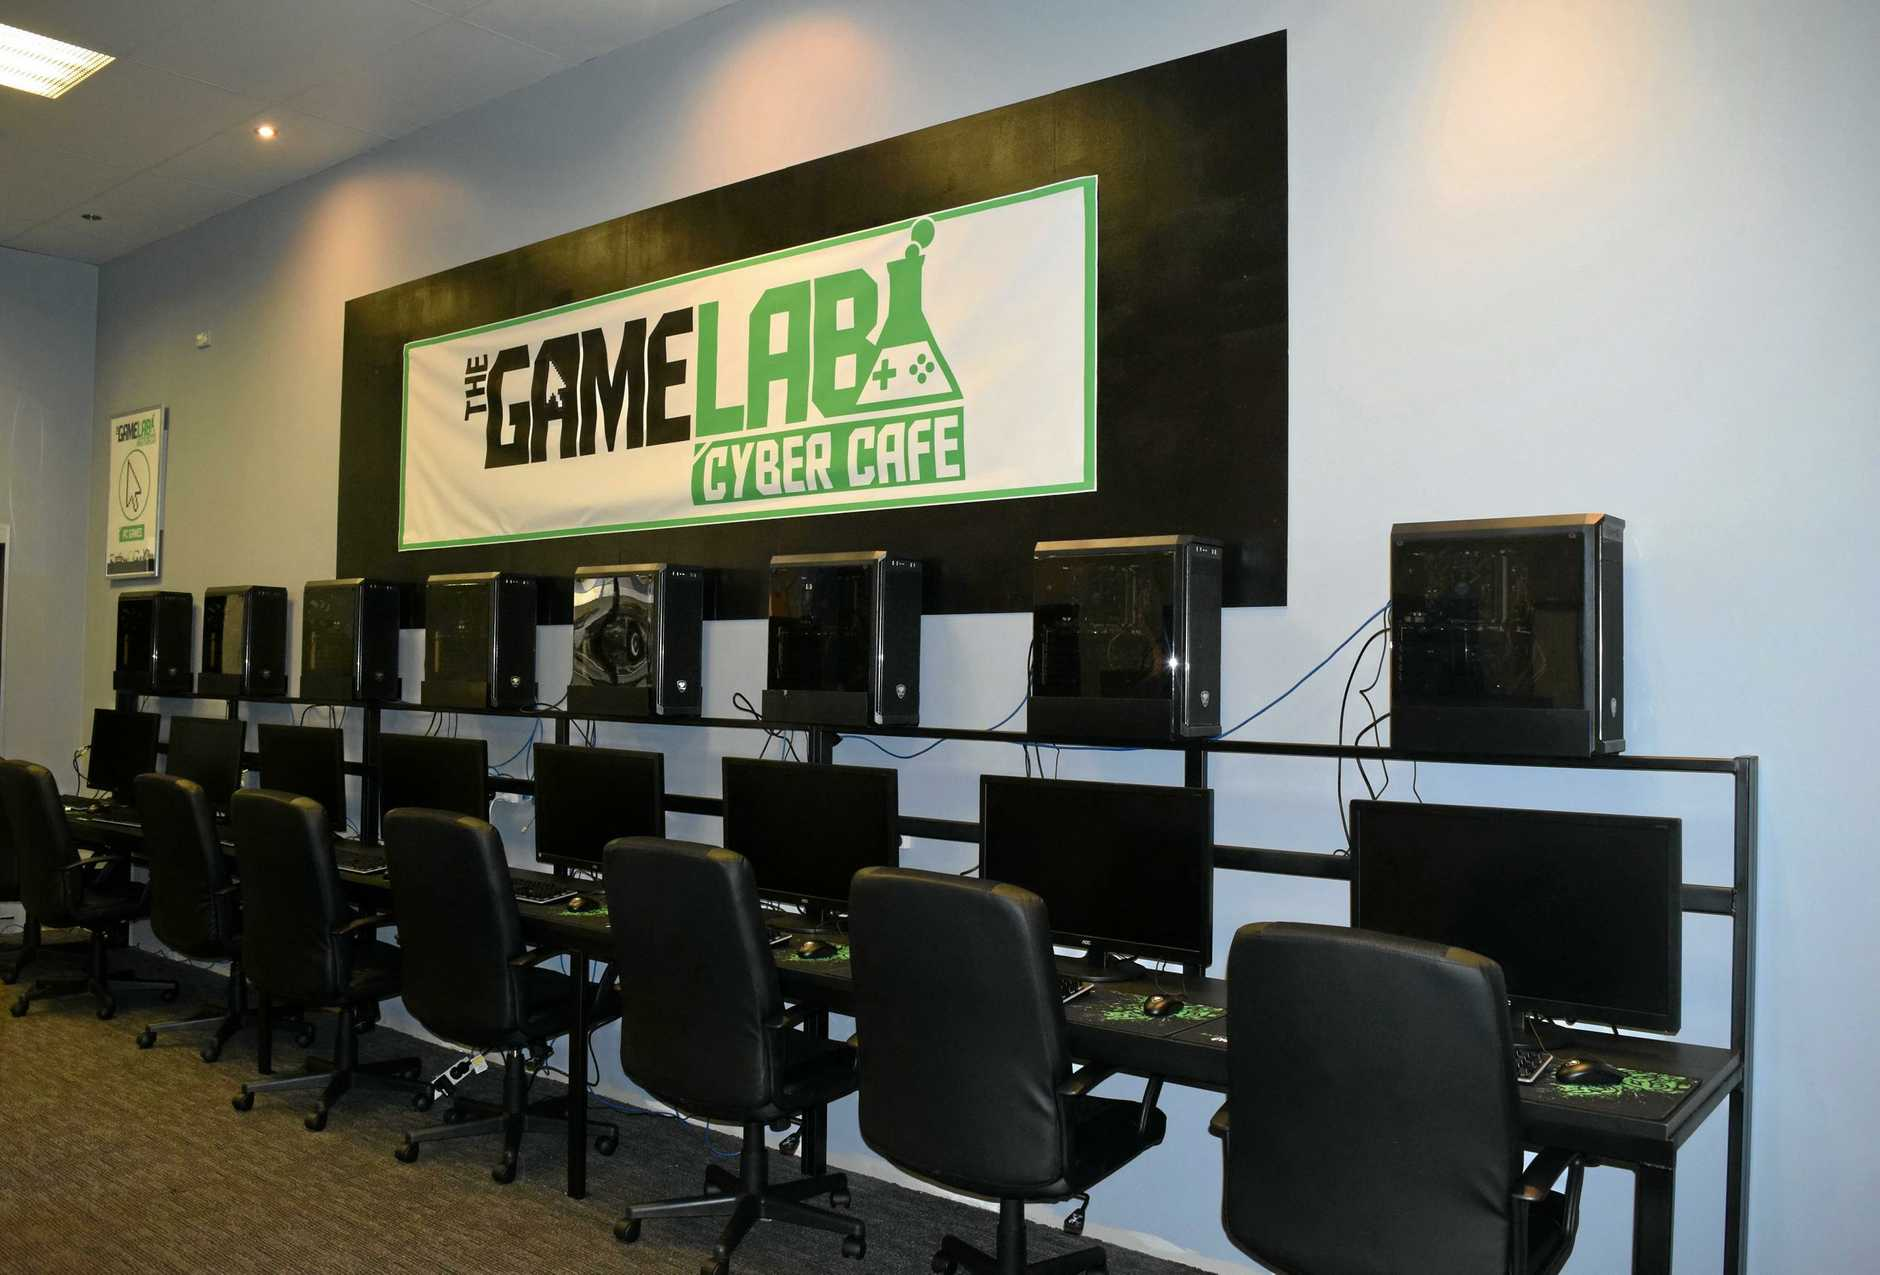 GOING CYBER: An inside look at the computers at the Game Lab Cyber Cafe.